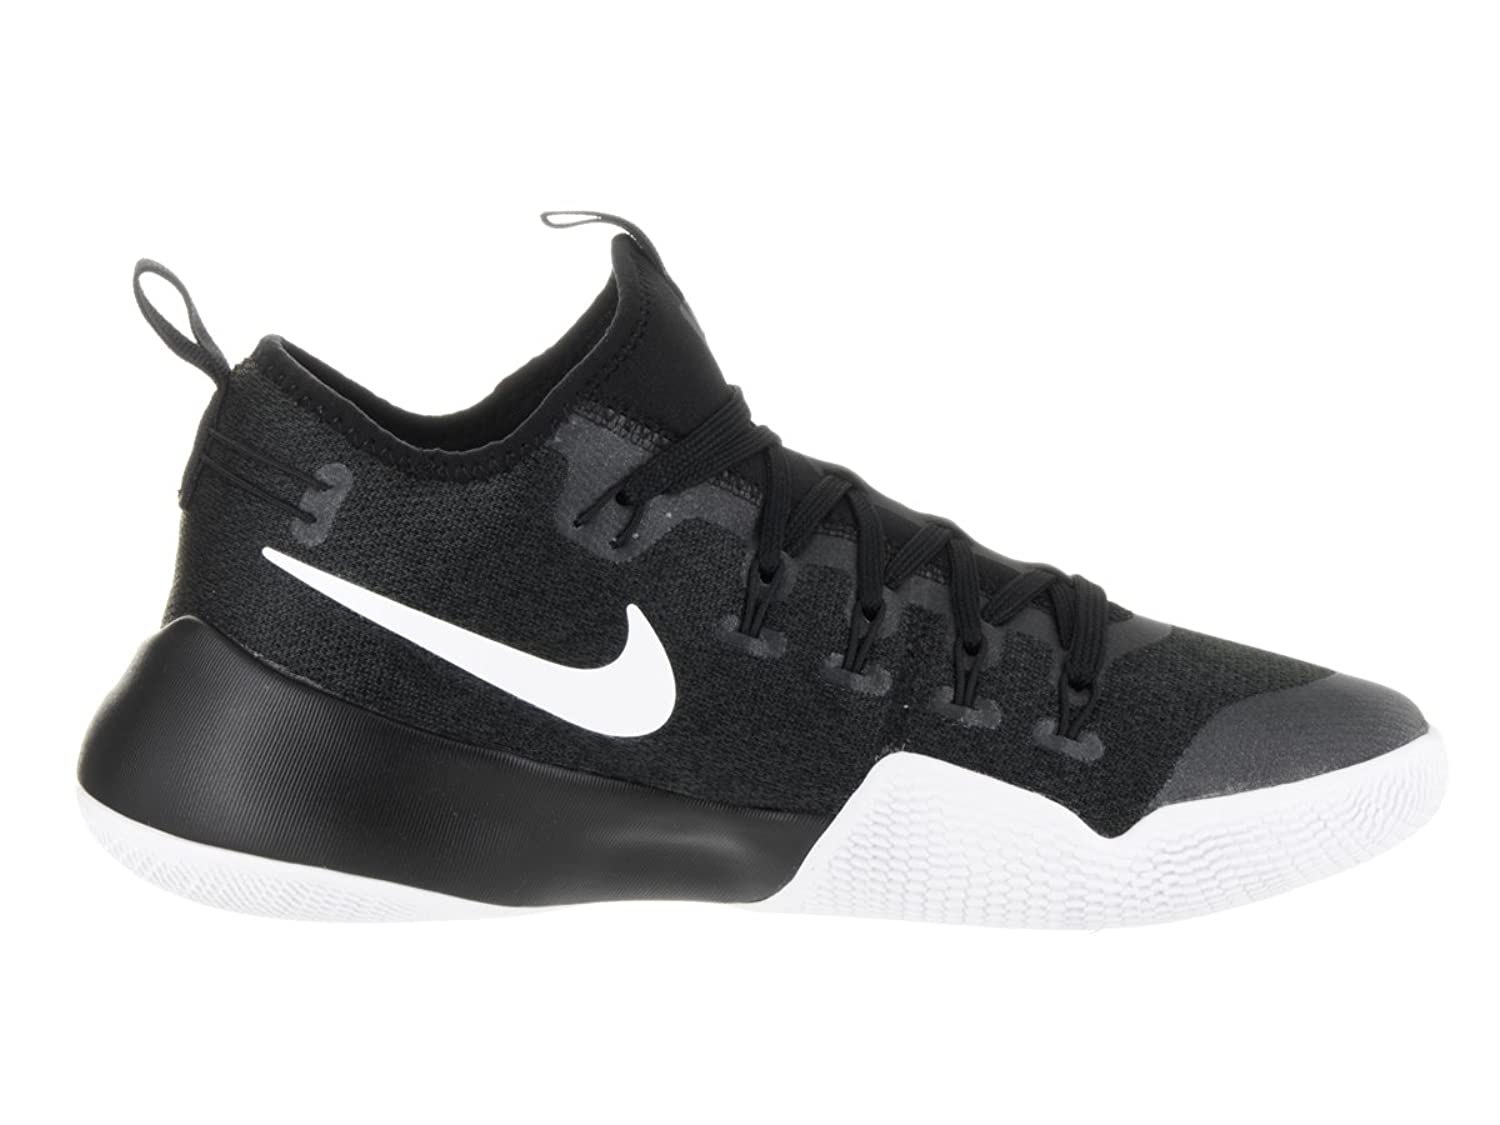 2f3d6bb75620 ... low price amazon nike mens hypershift black white anthracite basketball  shoe 9.5 men us fashion sneakers